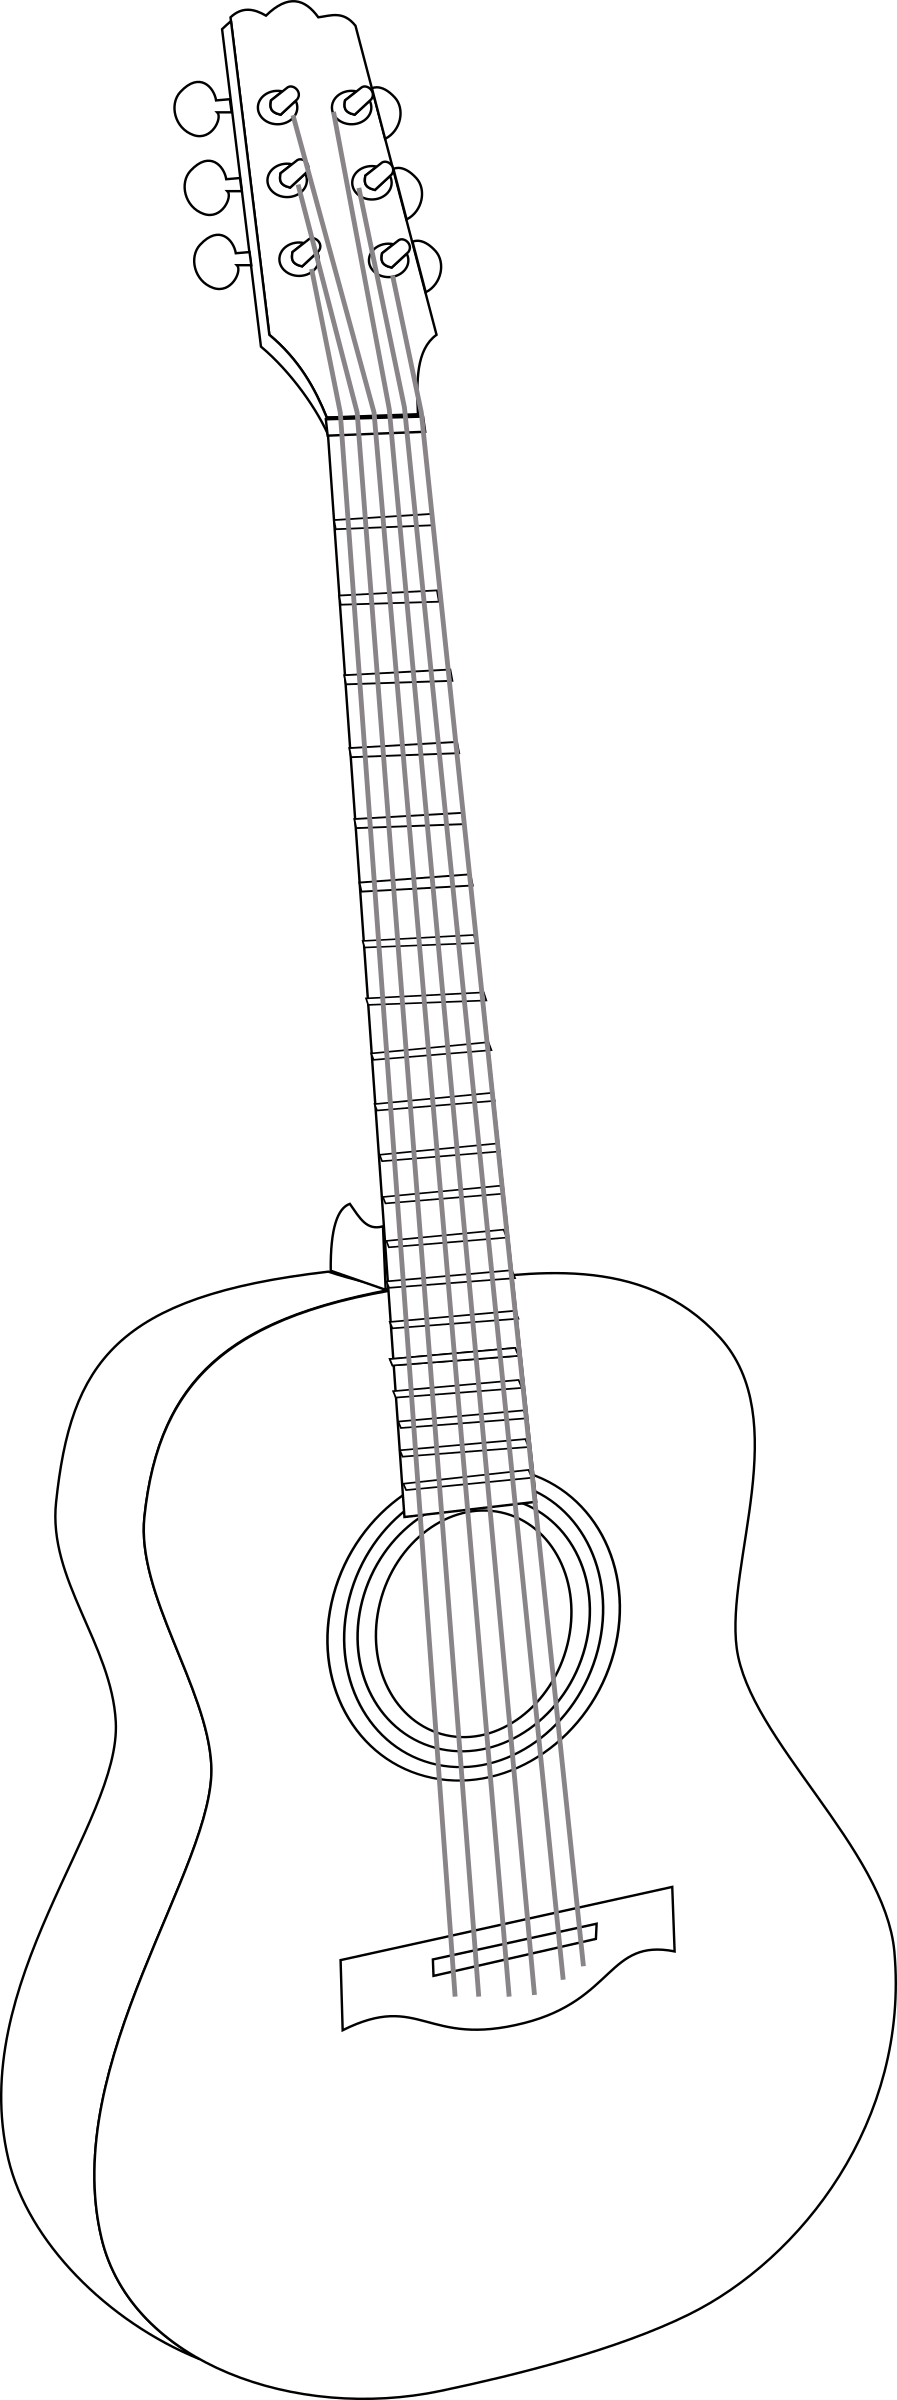 Big image png. White clipart guitar